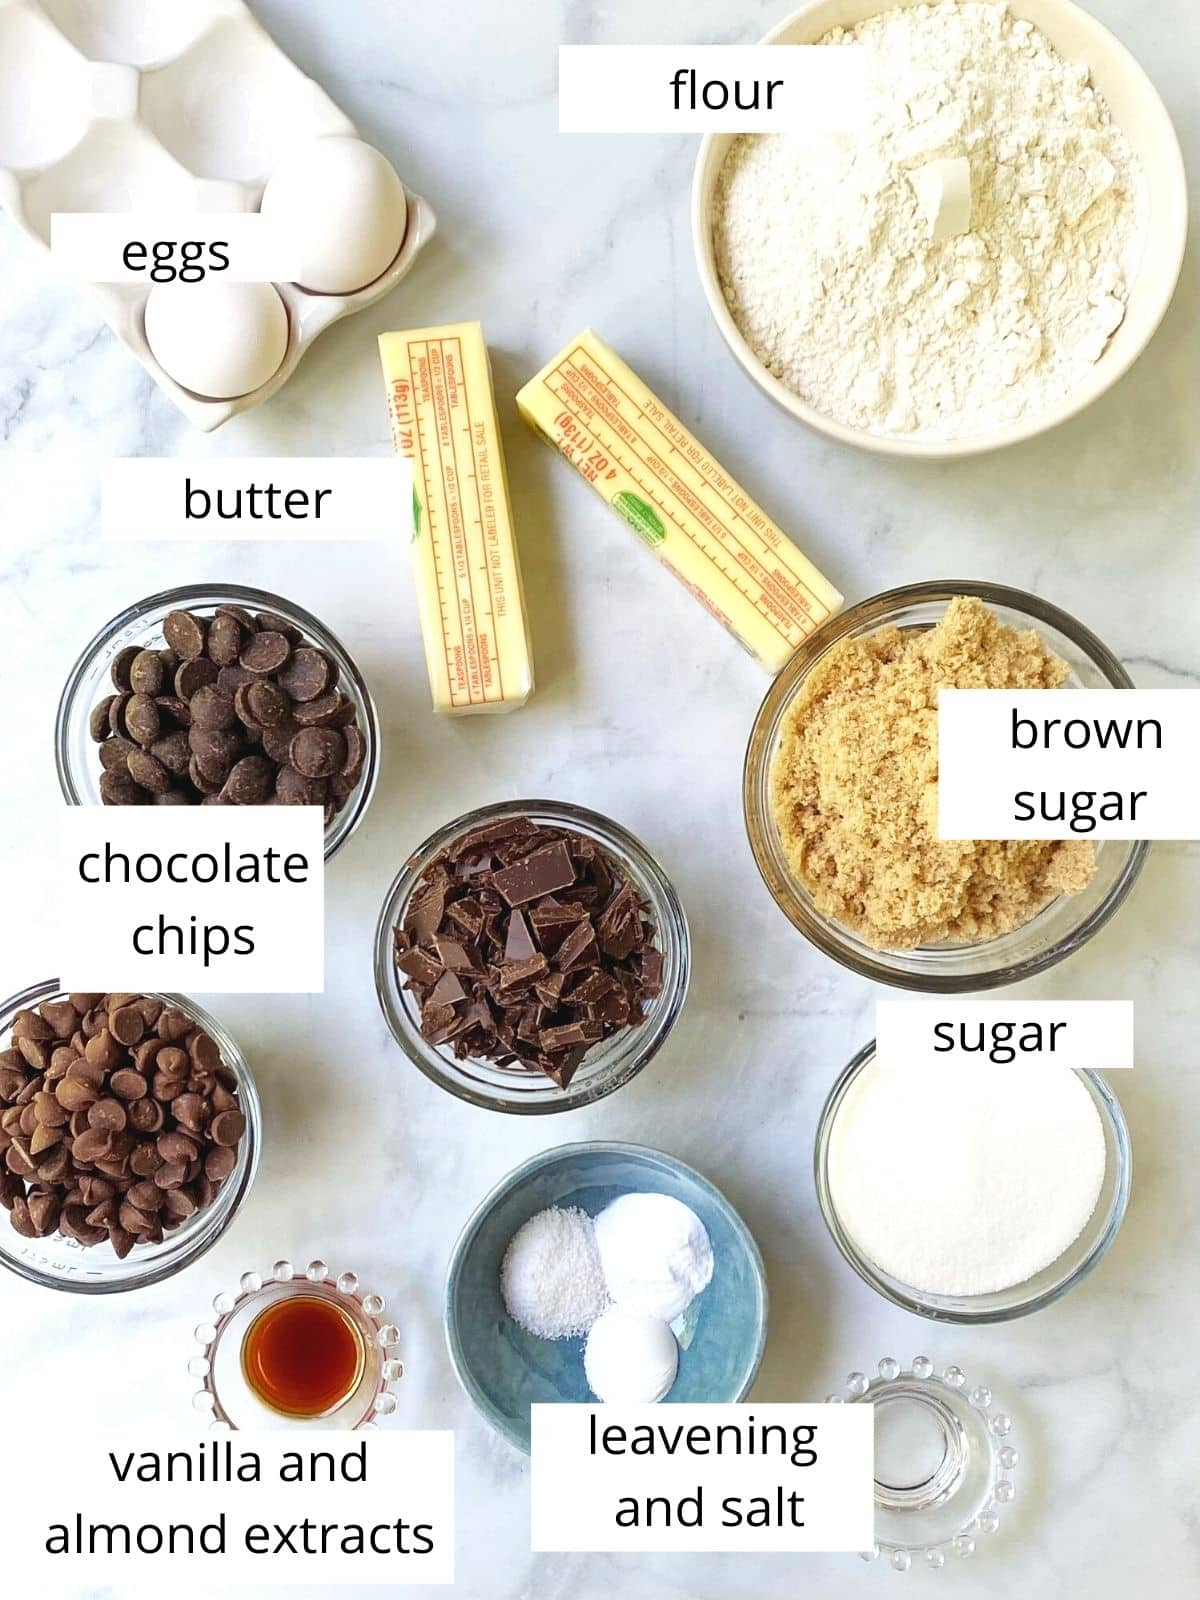 array of ingredients - eggs, butter, flour, sugar, brown sugar, leavening, salt, extracts, and chocolate chips